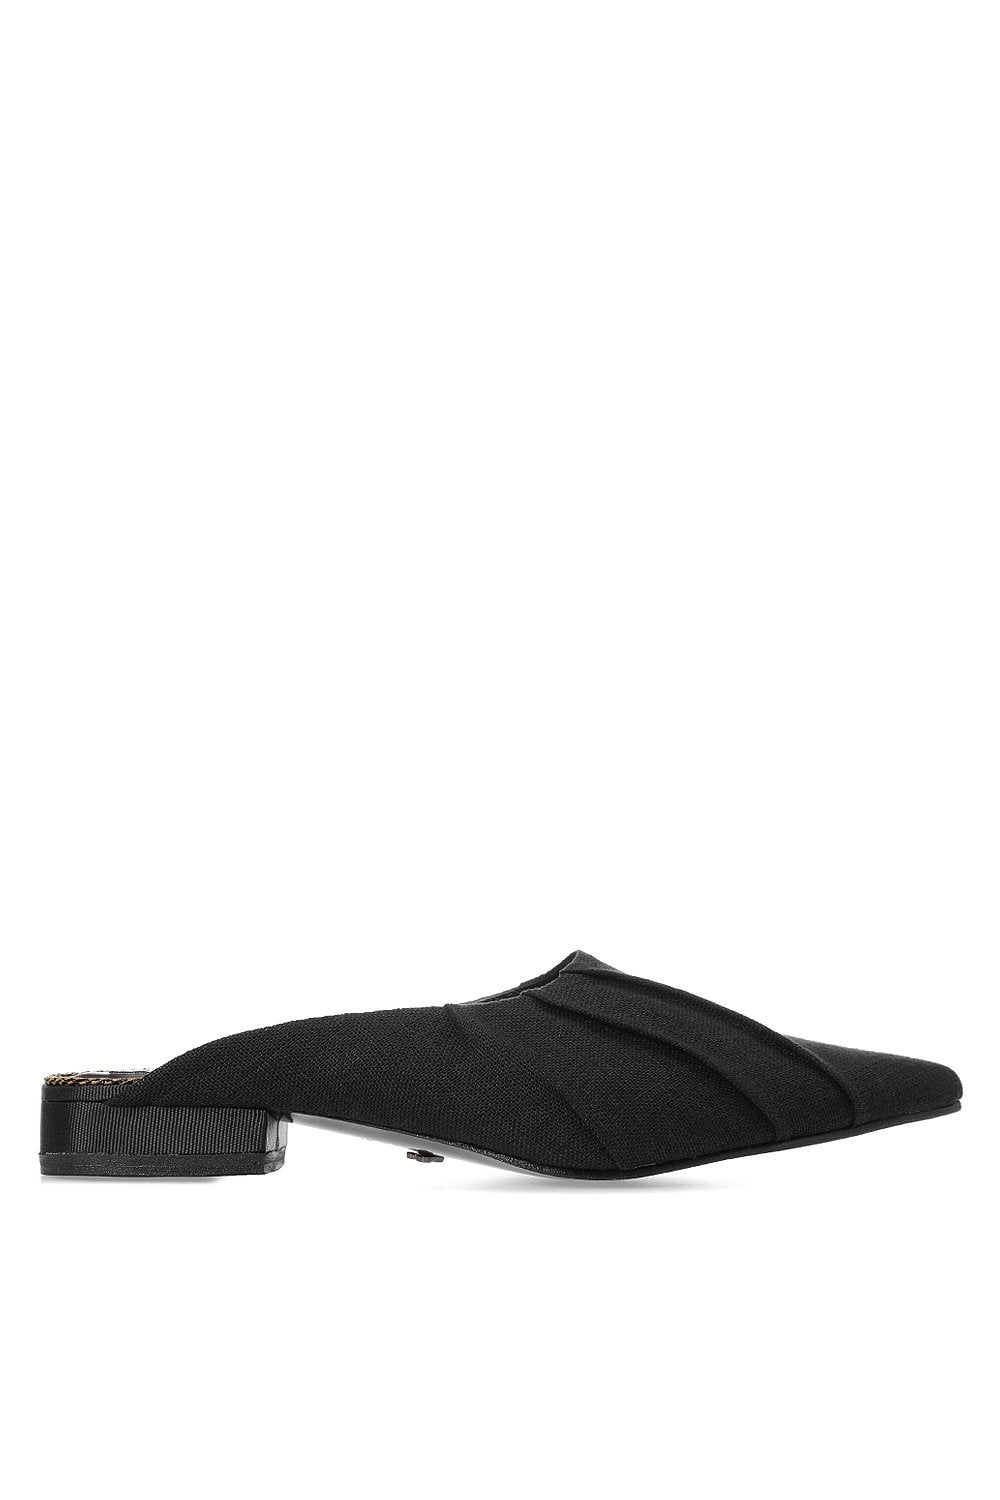 Black canvas mules